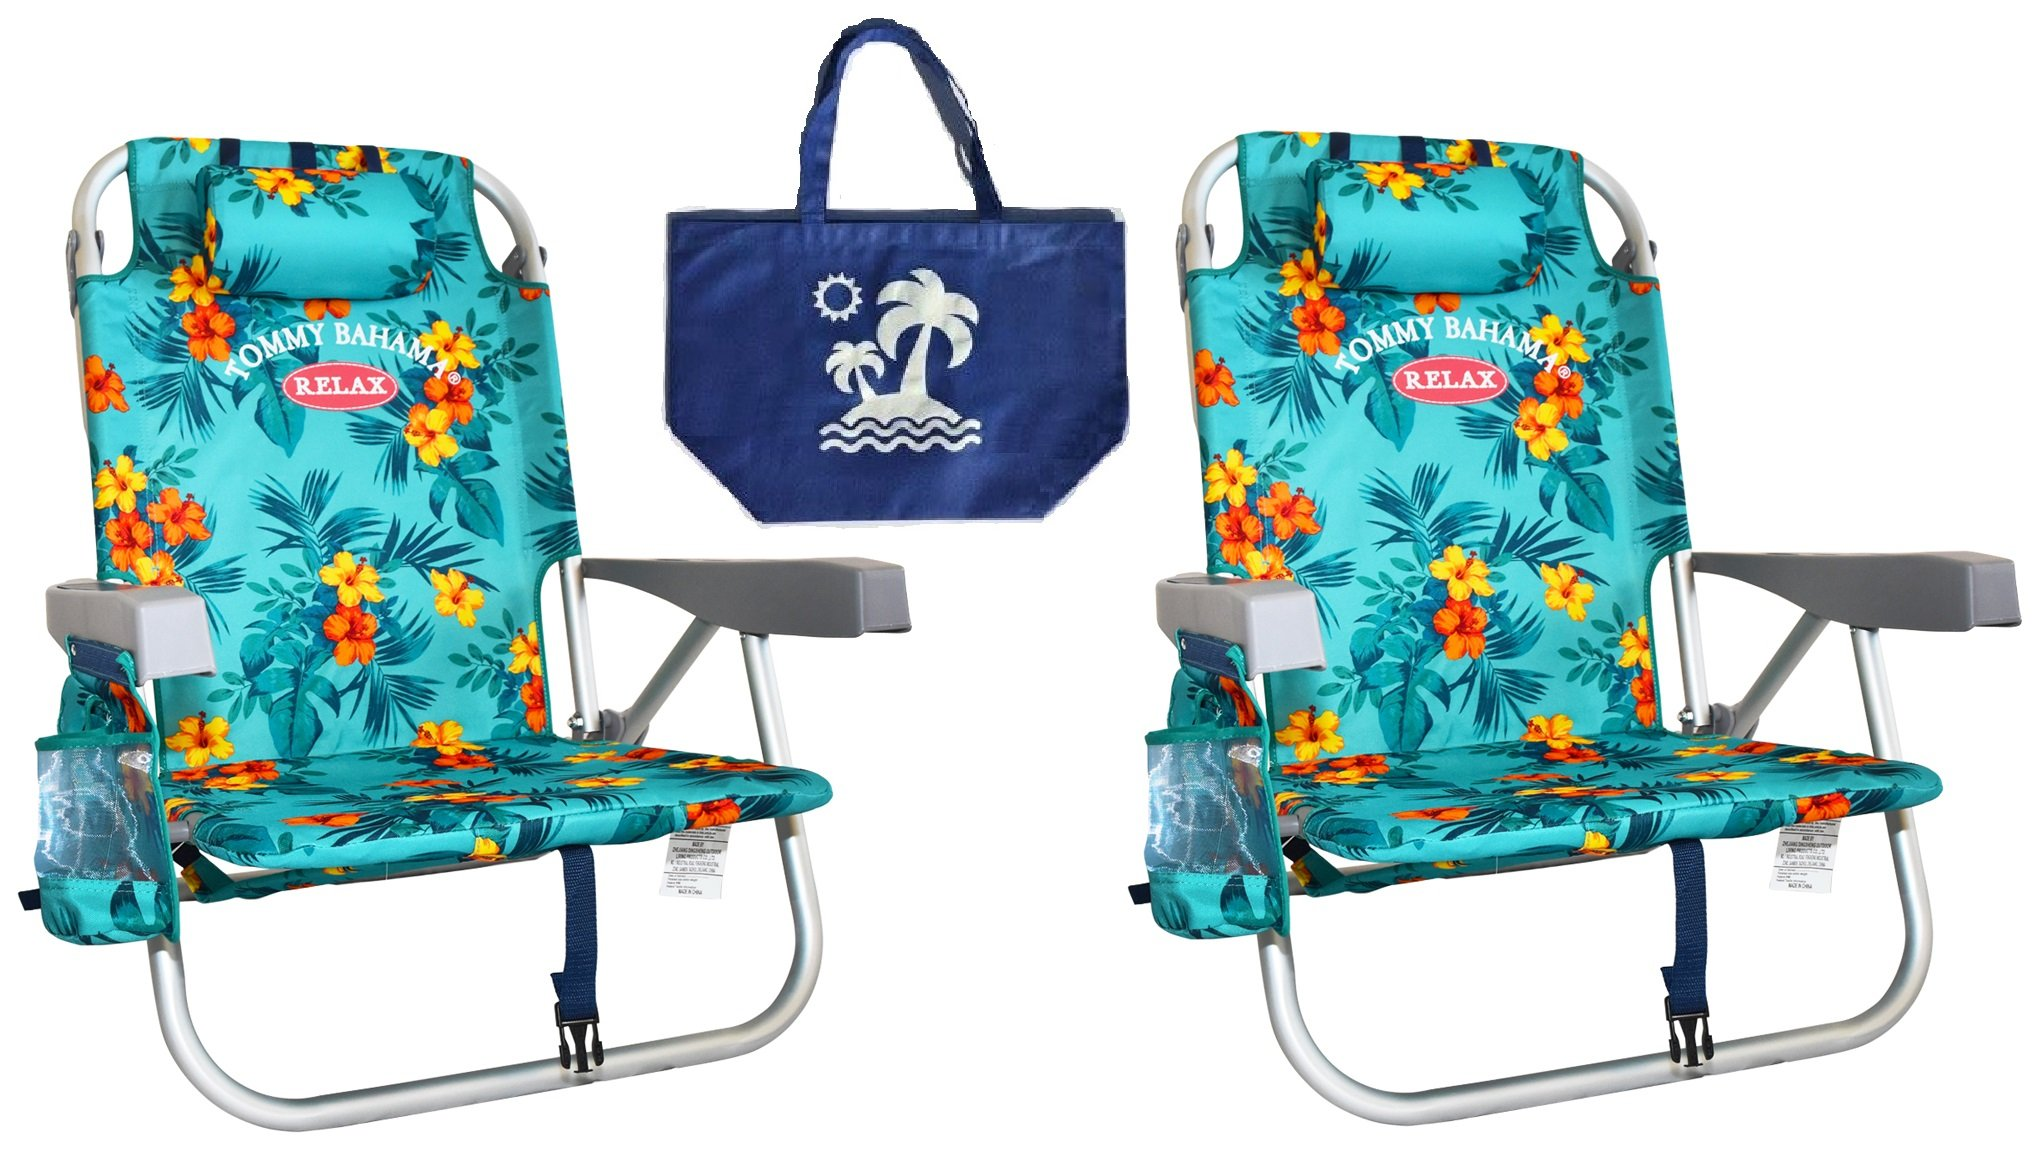 2 Tommy Bahama Backpack Beach Chairs/Turquoise + 1 Medium Tote Bag